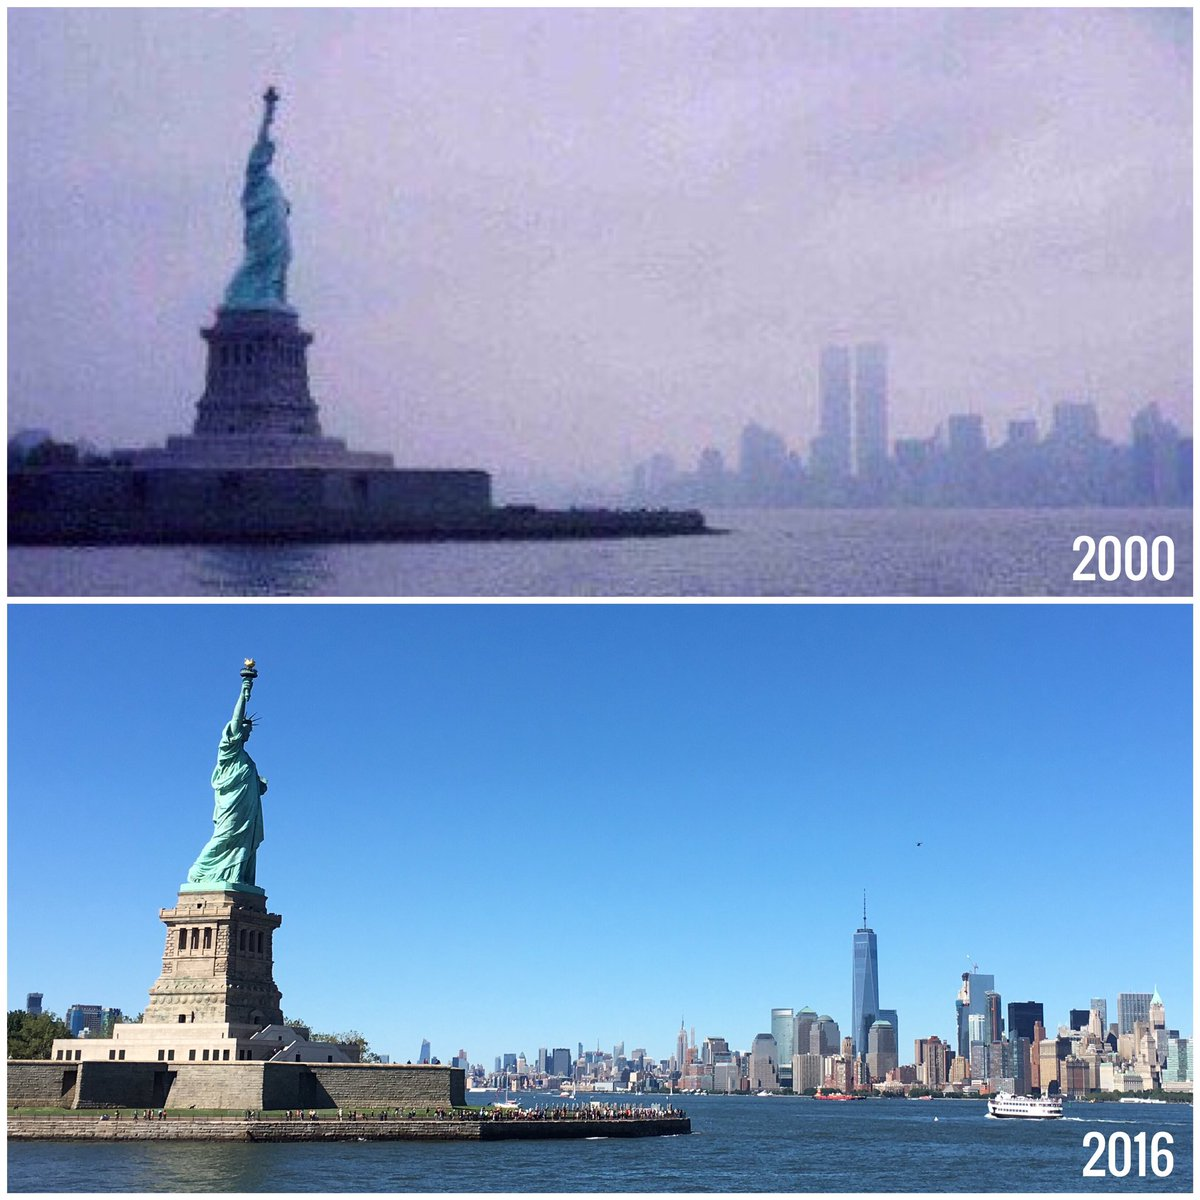 I took these photos 16 years apart. #NeverForget https://t.co/wckeJzhavc